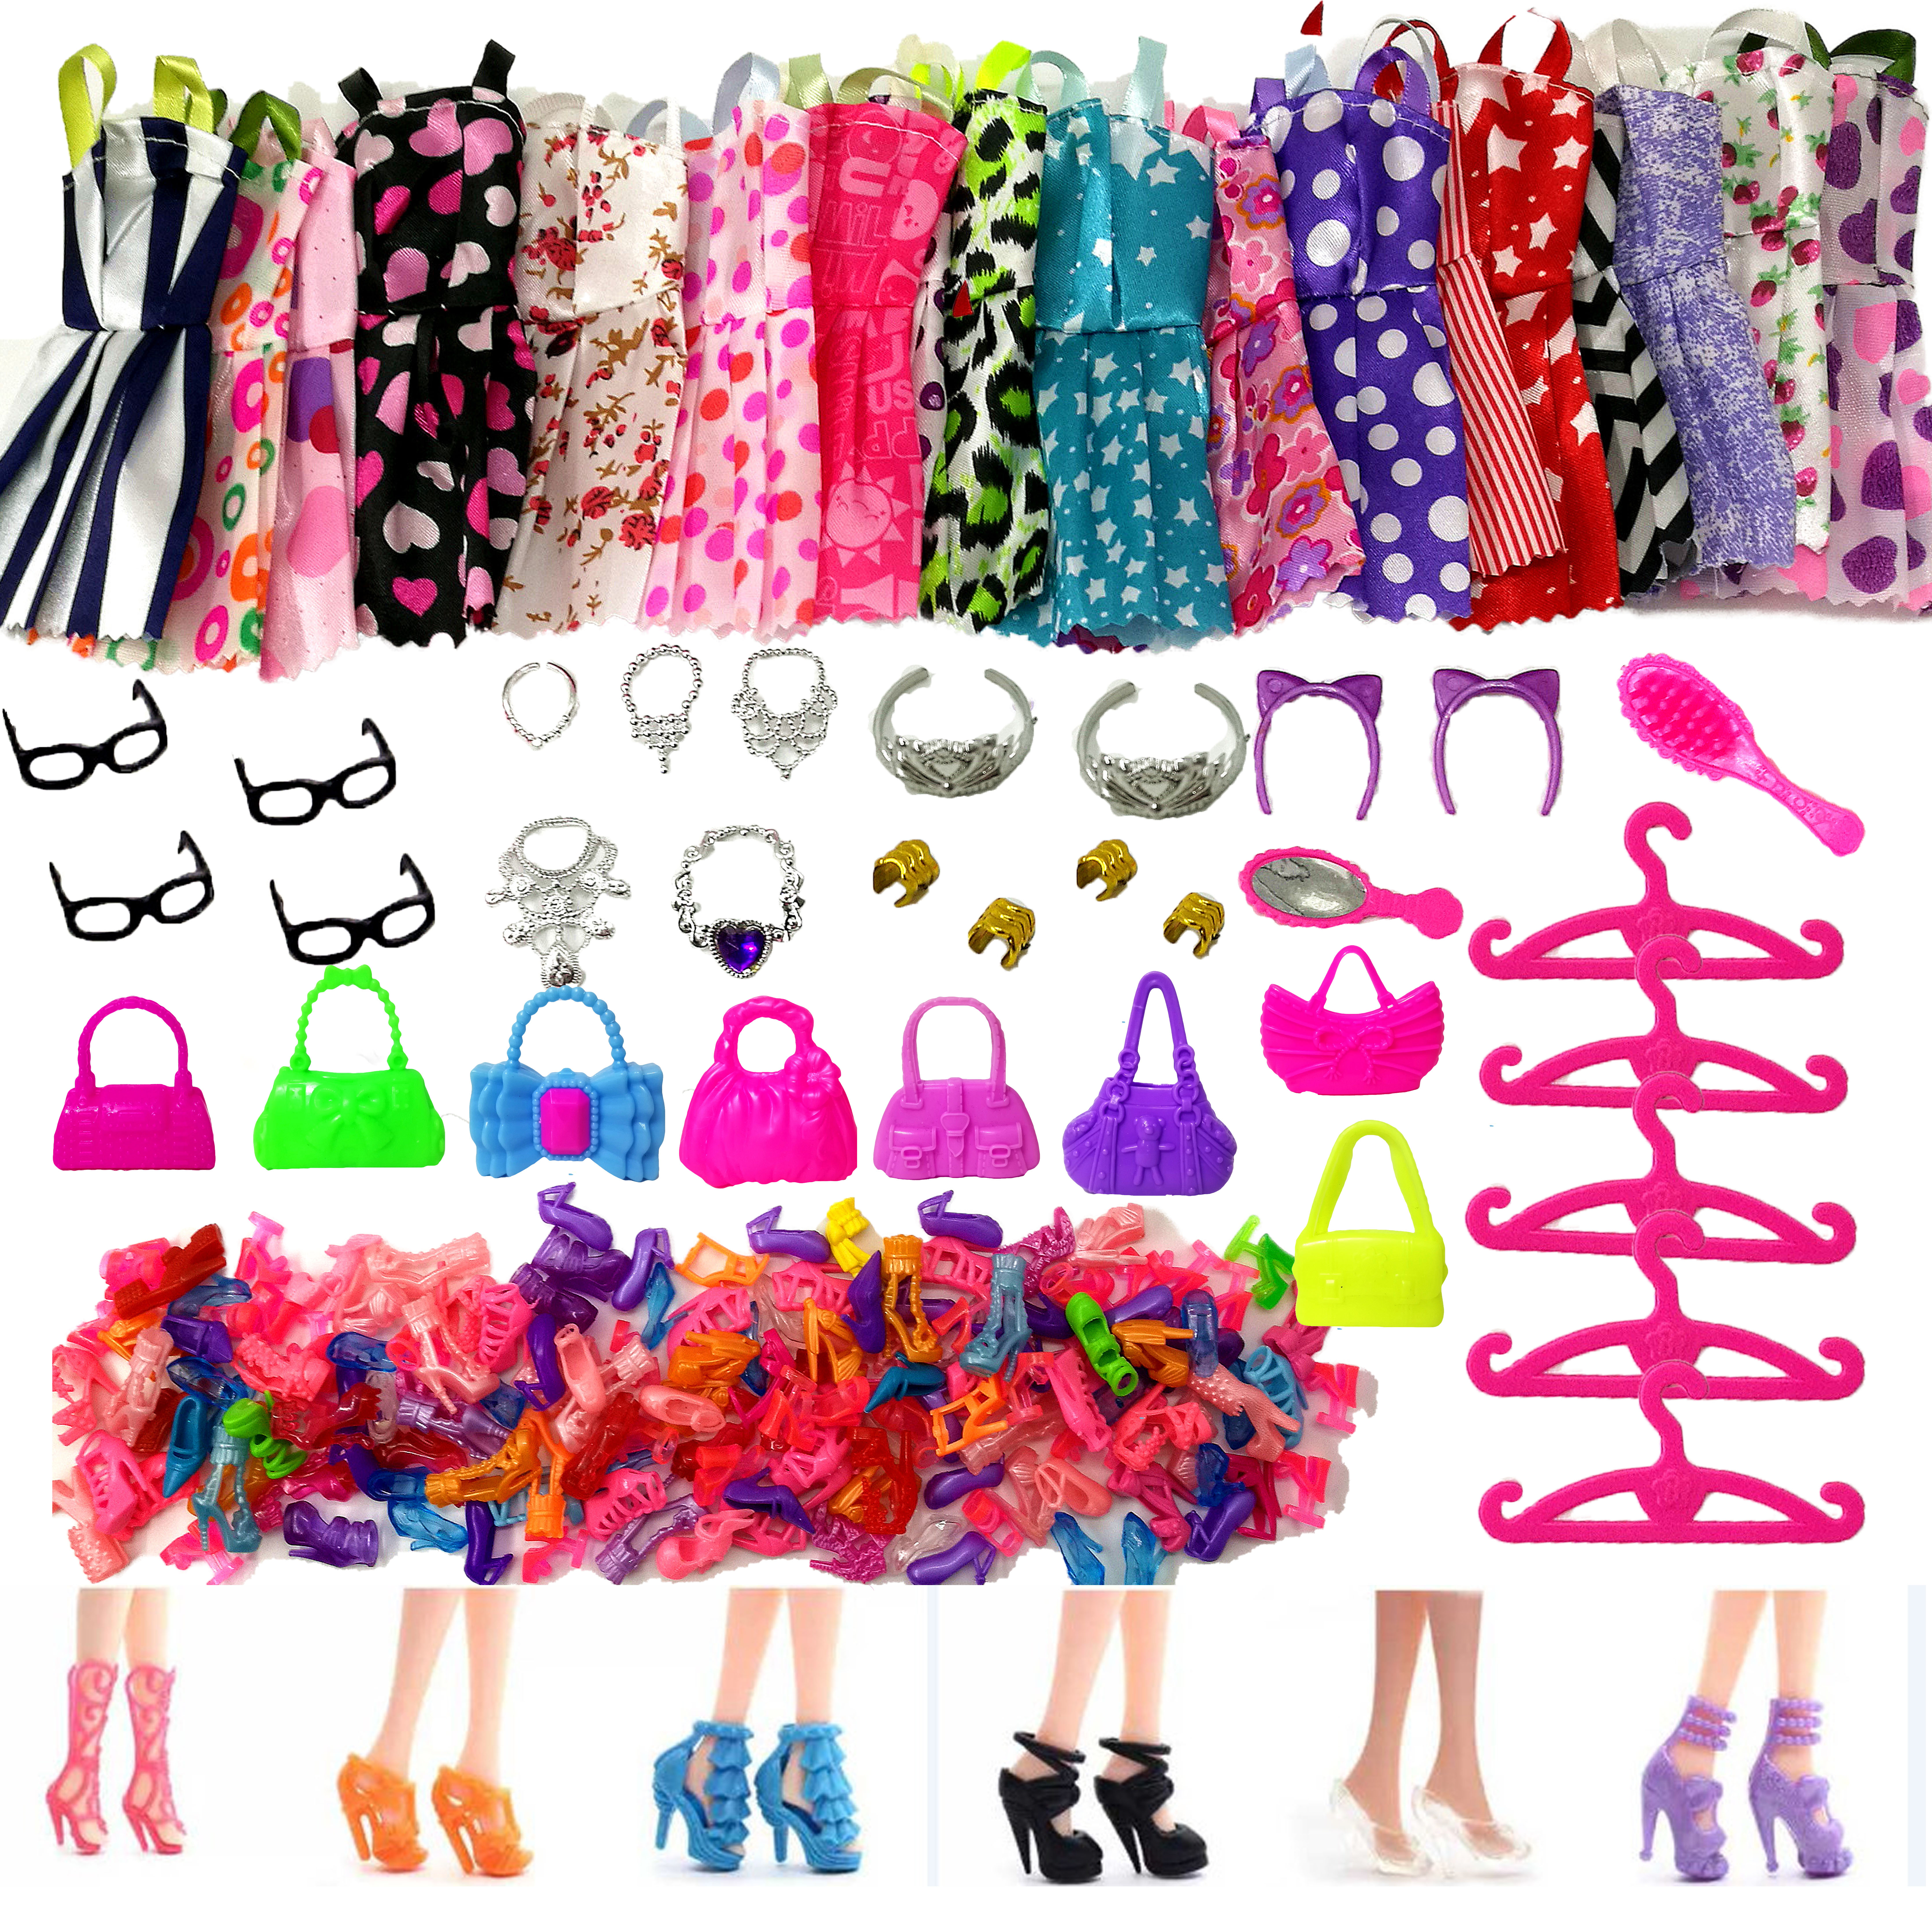 Random 1 Set Doll Accessories For Barbie Doll Shoes Boots Mini Dress Handbags Crown Hangers Glasses Doll Clothes Kids Toy 12''